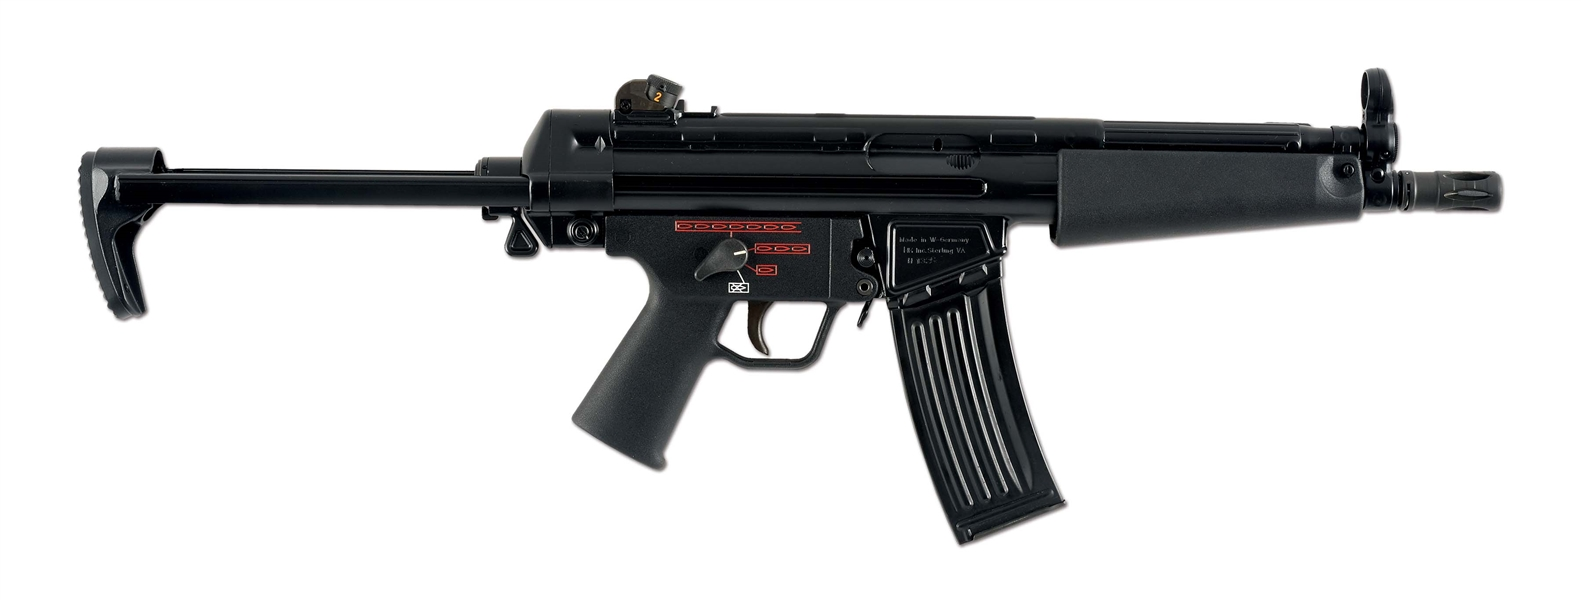 (N) FOUR POSITION HECKLER & KOCH MACHINE GUN AUTO SEAR KIT ON H & K MODEL 53 HOST GUN (FULLY TRANSFERABLE)